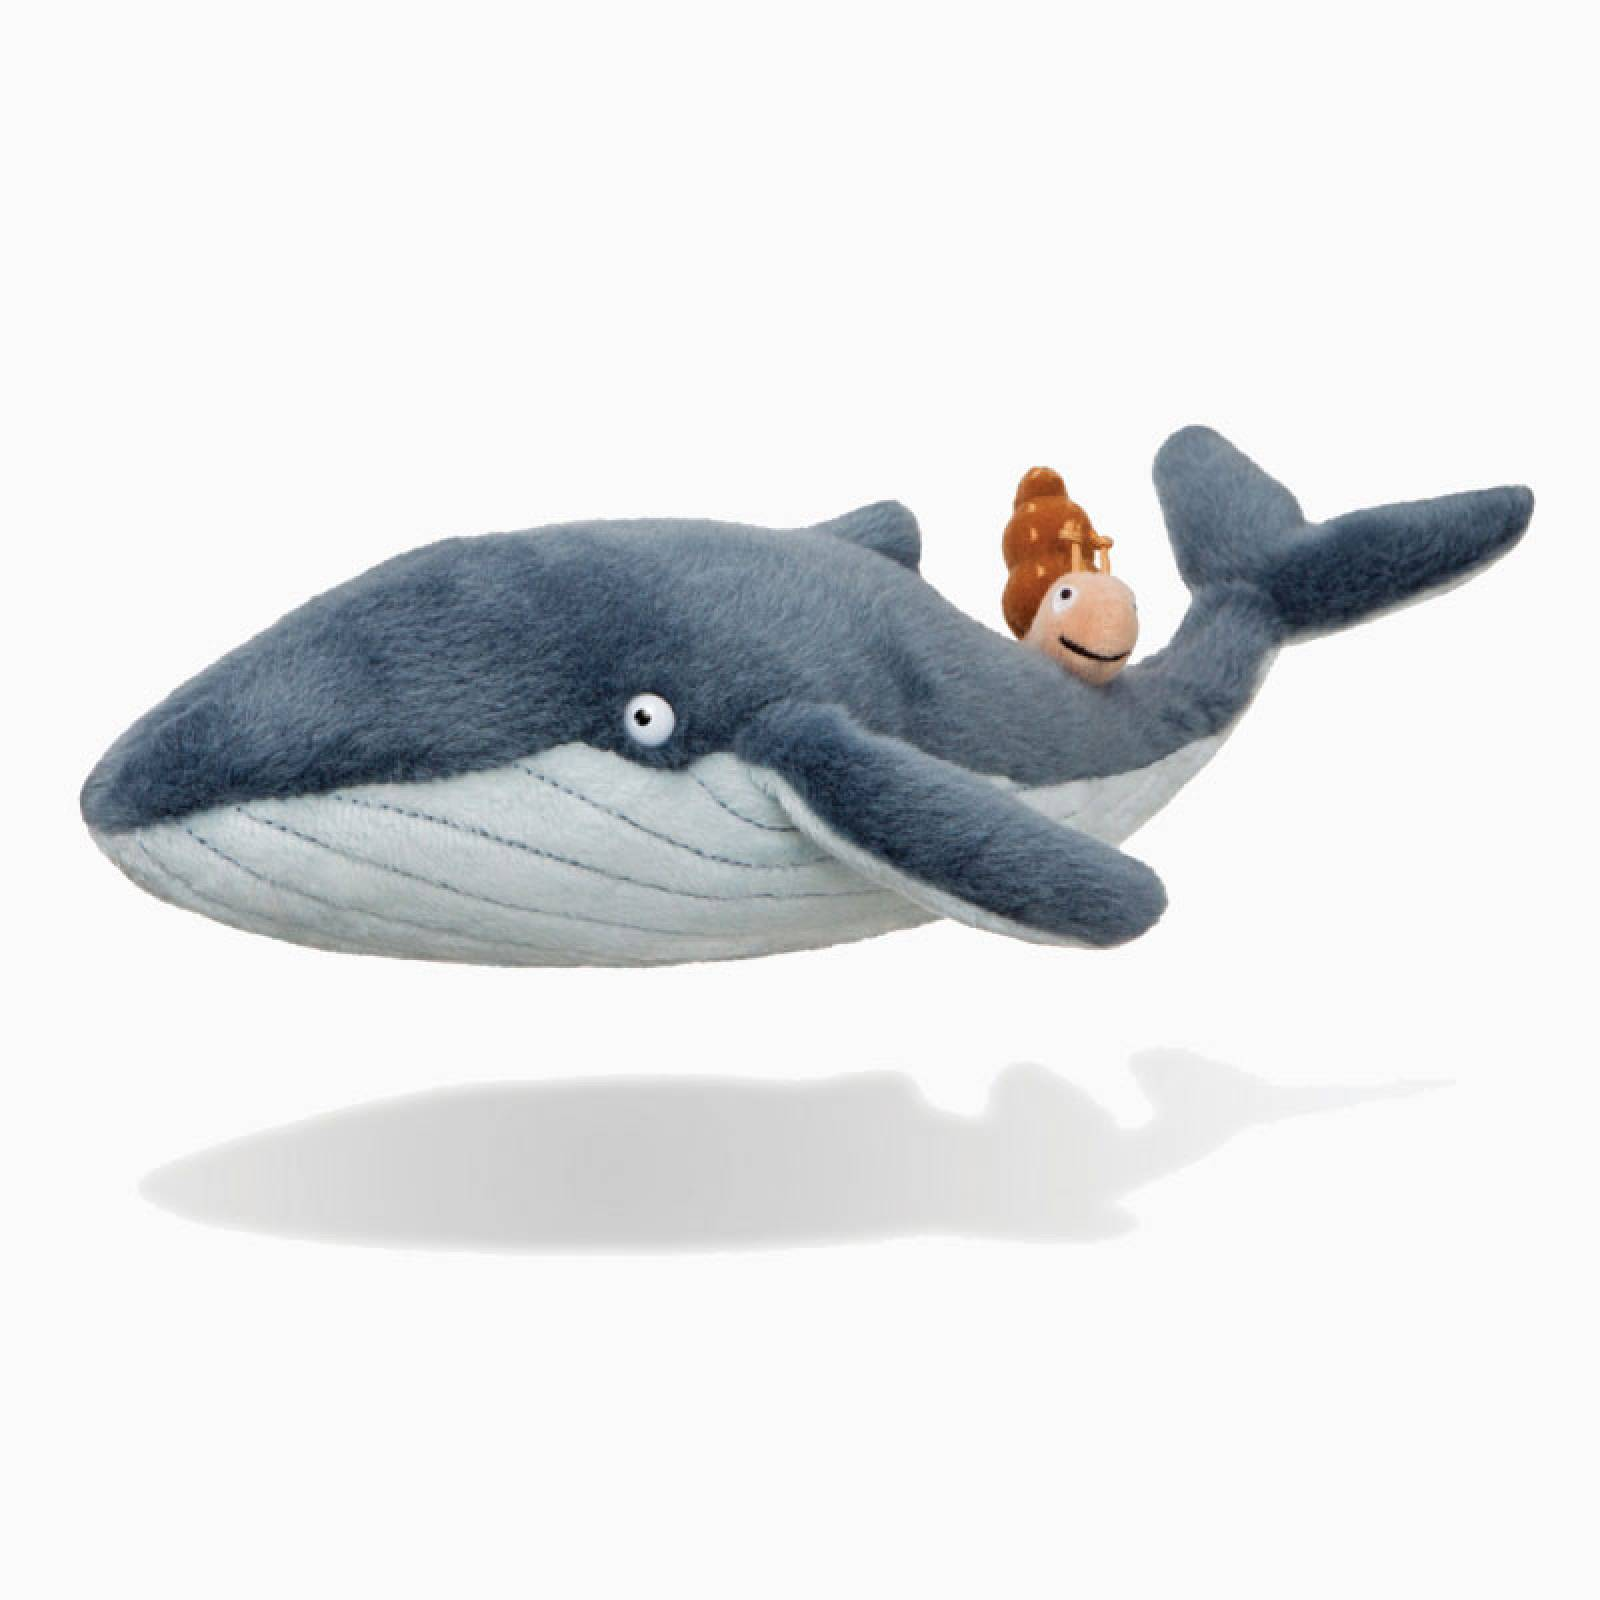 The Snail & The Whale Soft Toy